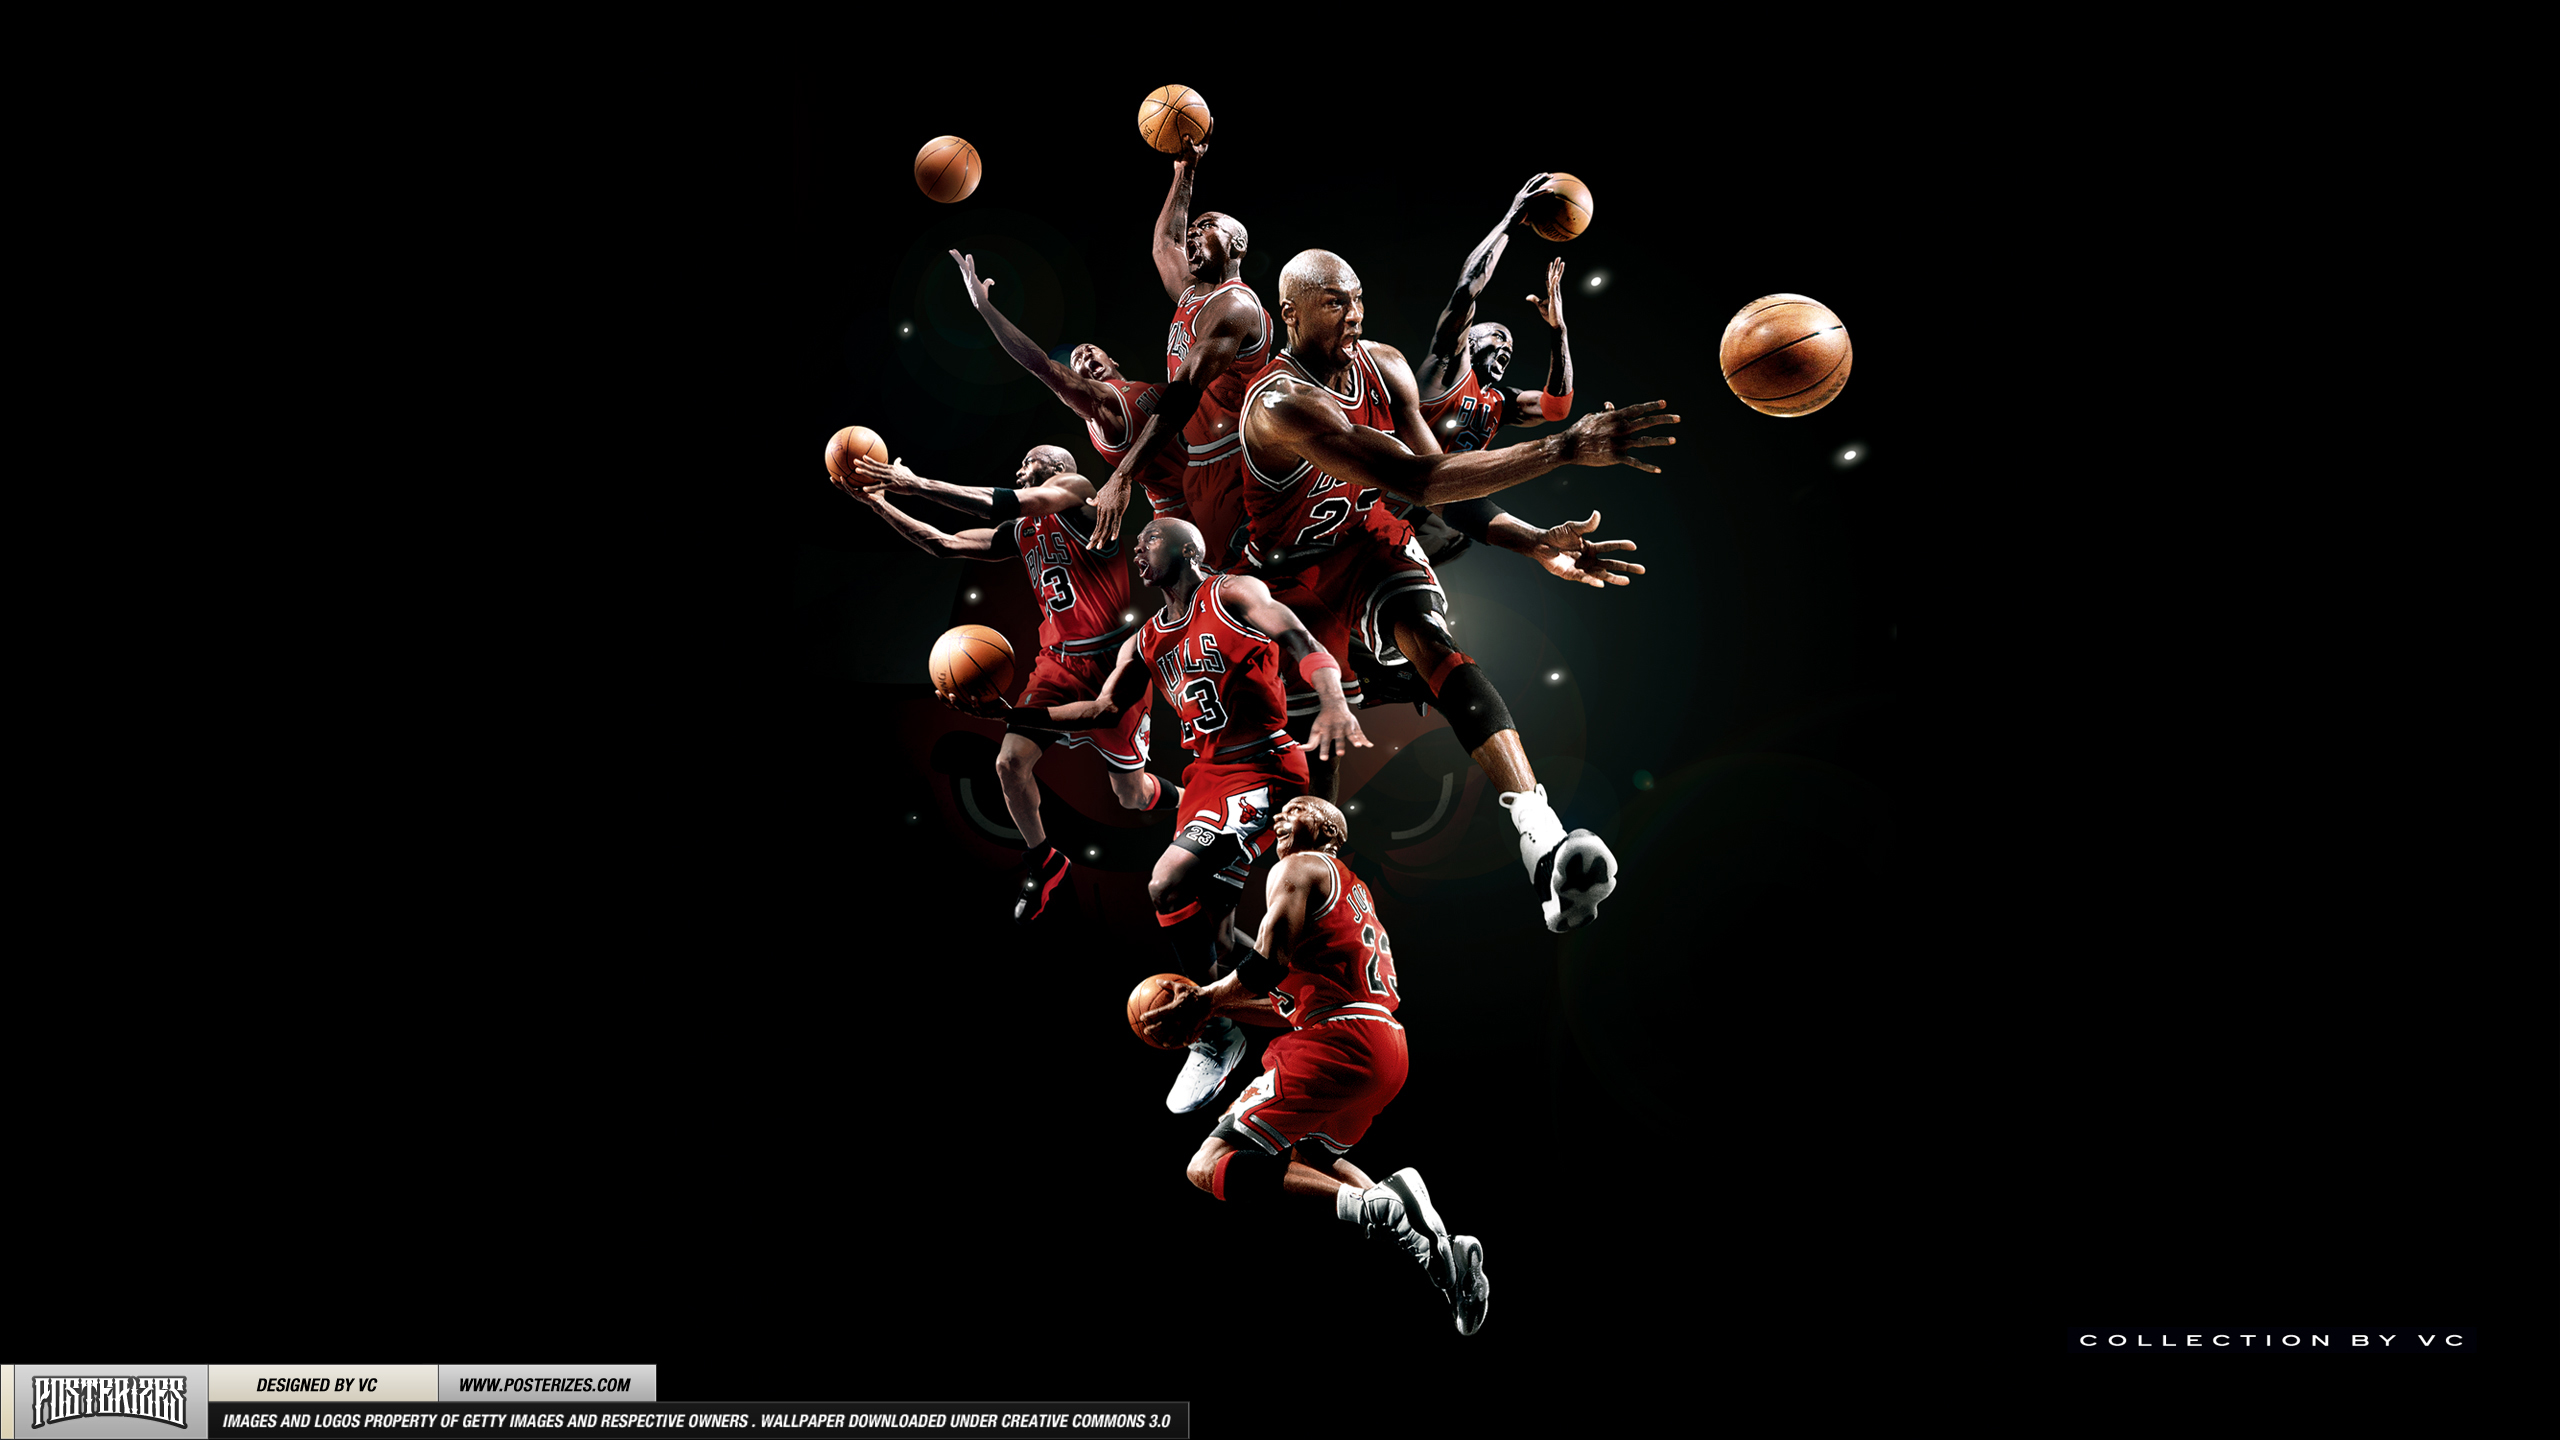 THE SQUAD; MJ and the Team Jordan Brand Players  Basketball 2560x1440